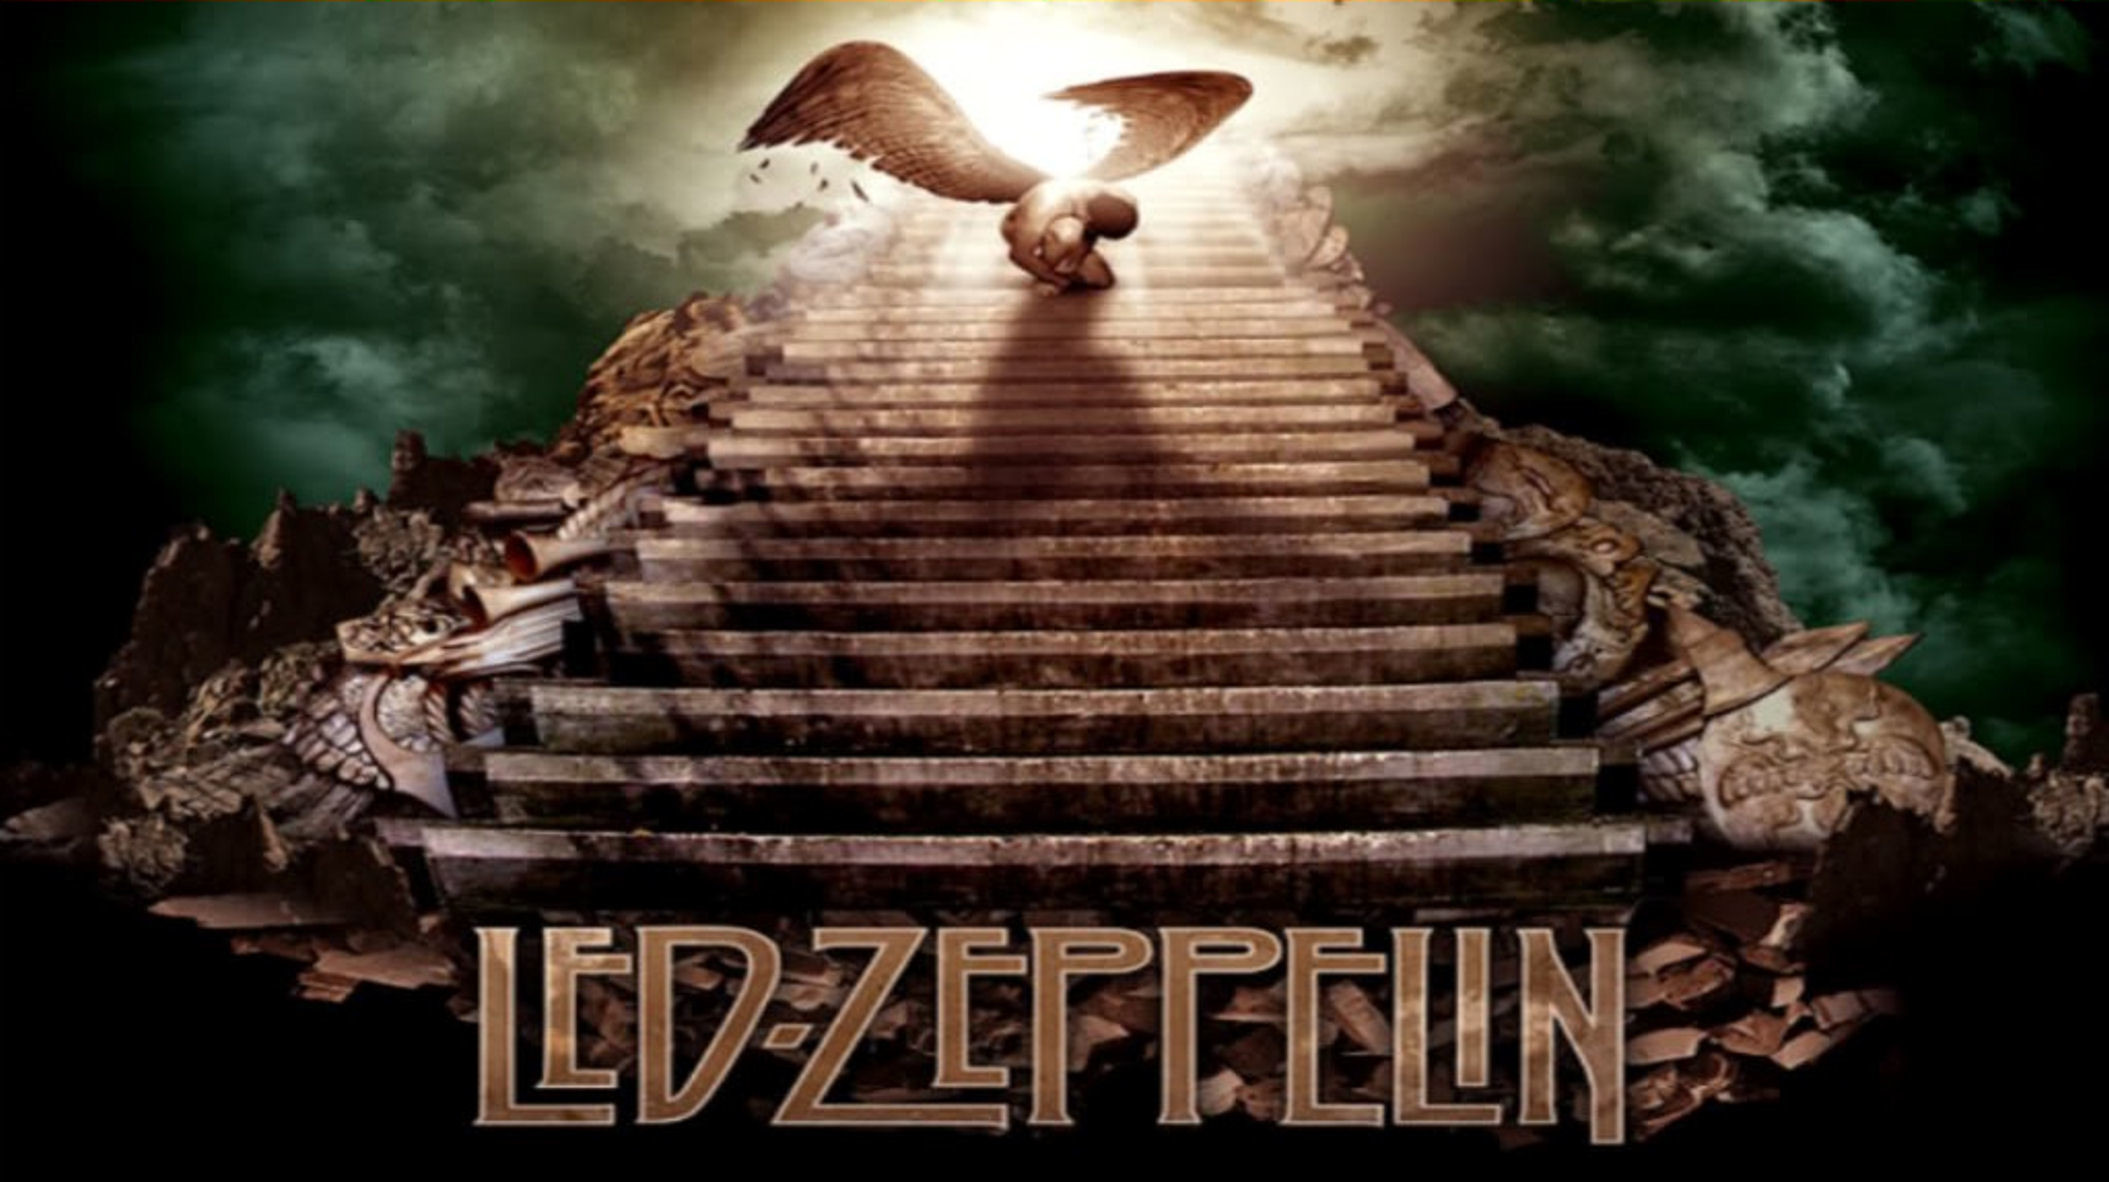 Led Zeppelin Wallpapers Wallpapertag